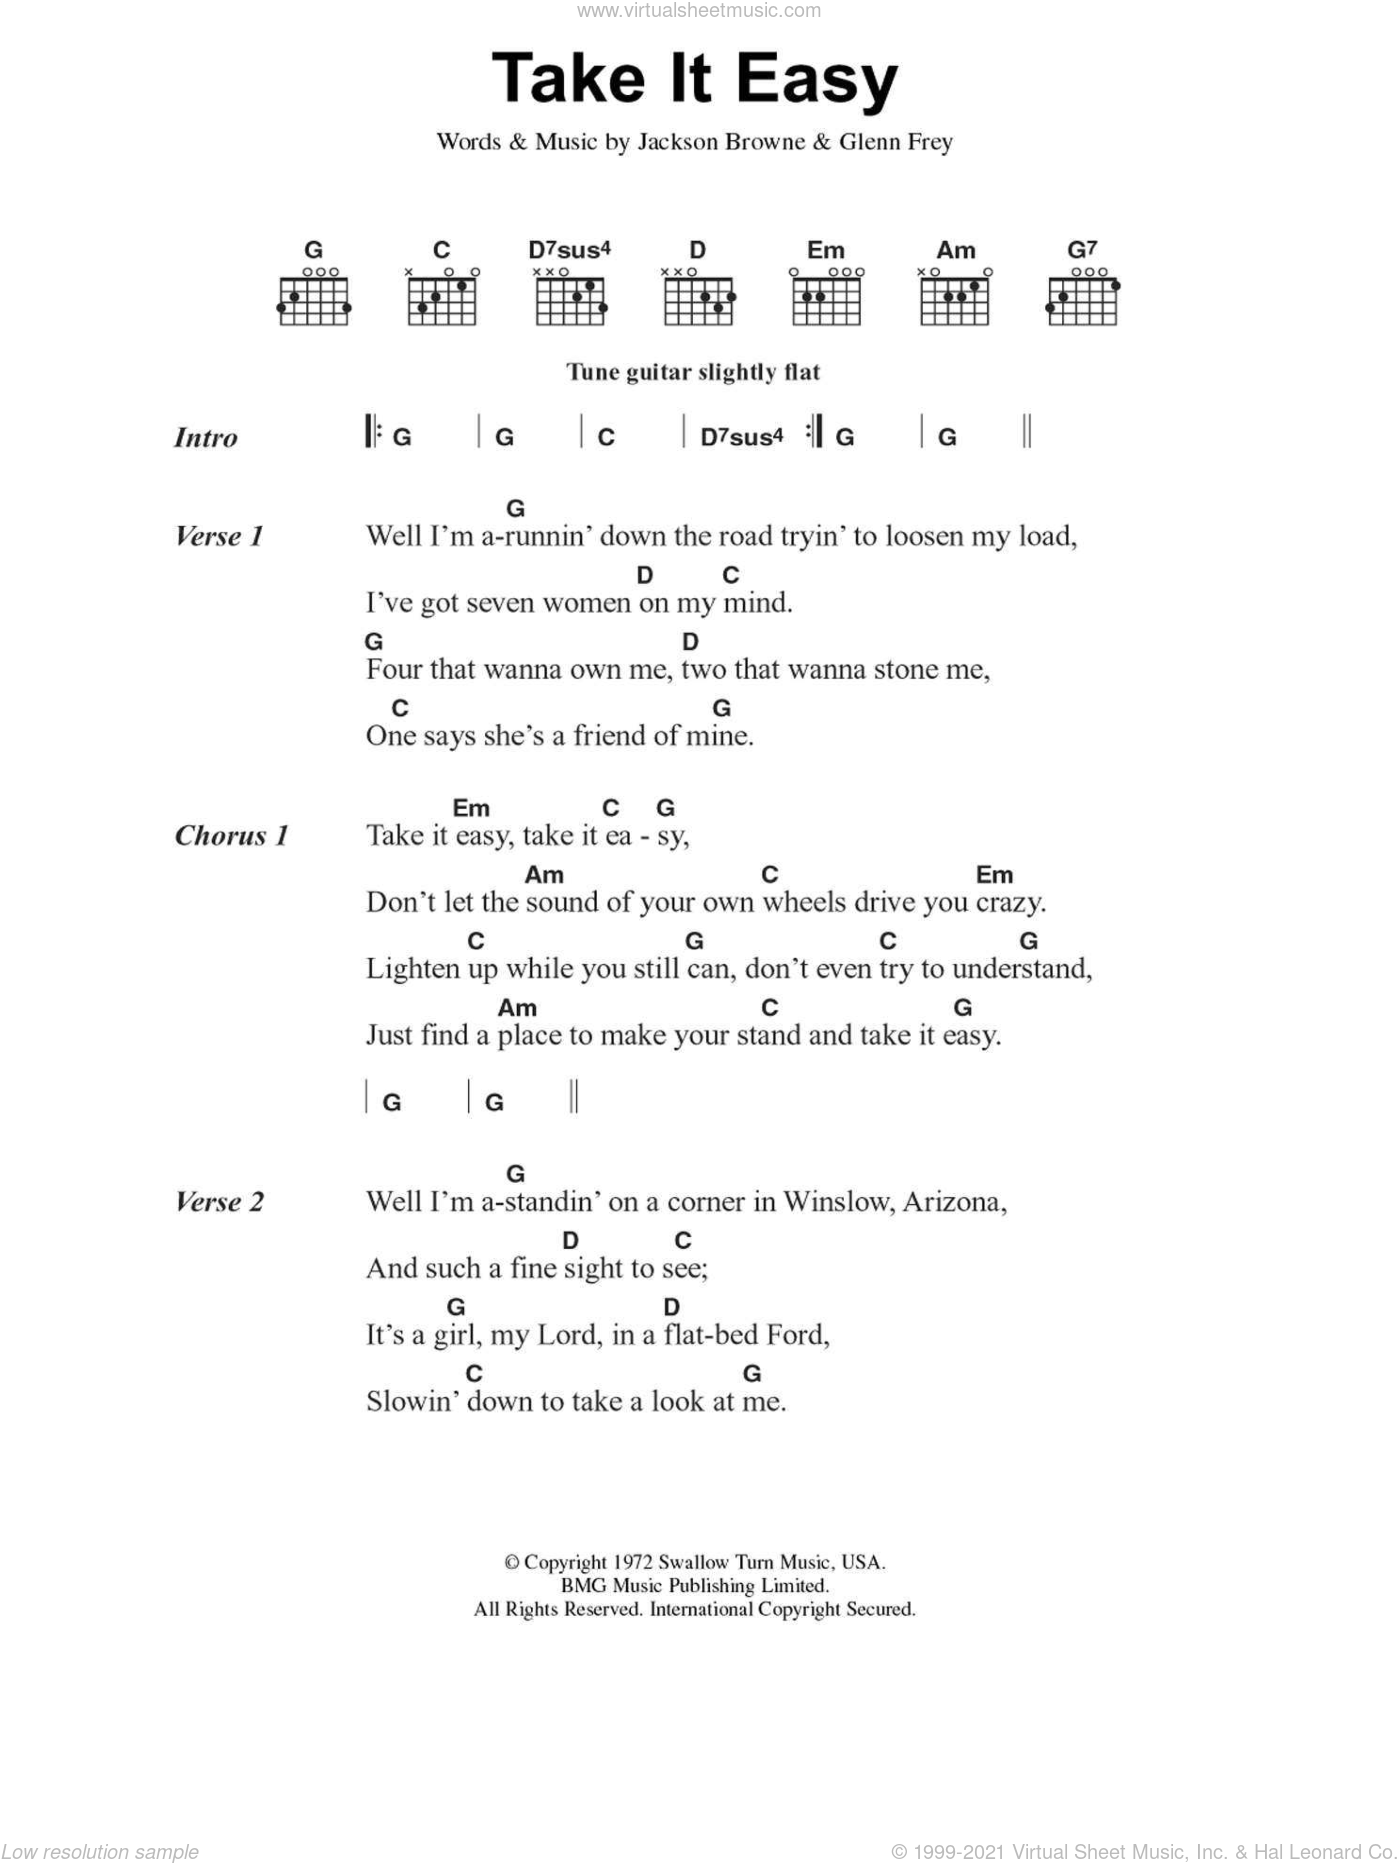 Take It Easy sheet music for guitar (chords) by Glenn Frey